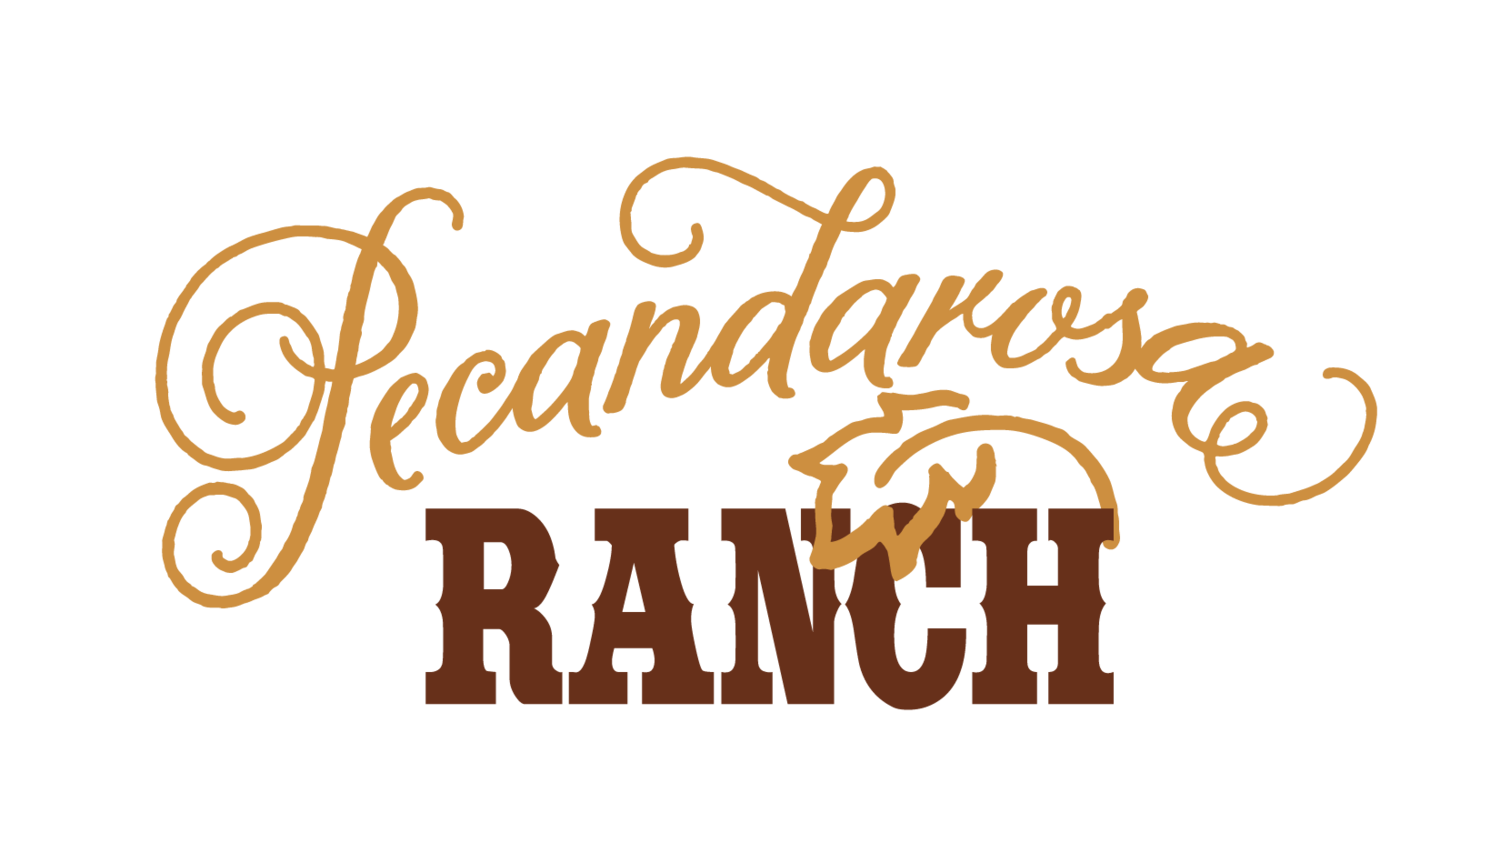 Pecandarosa Ranch